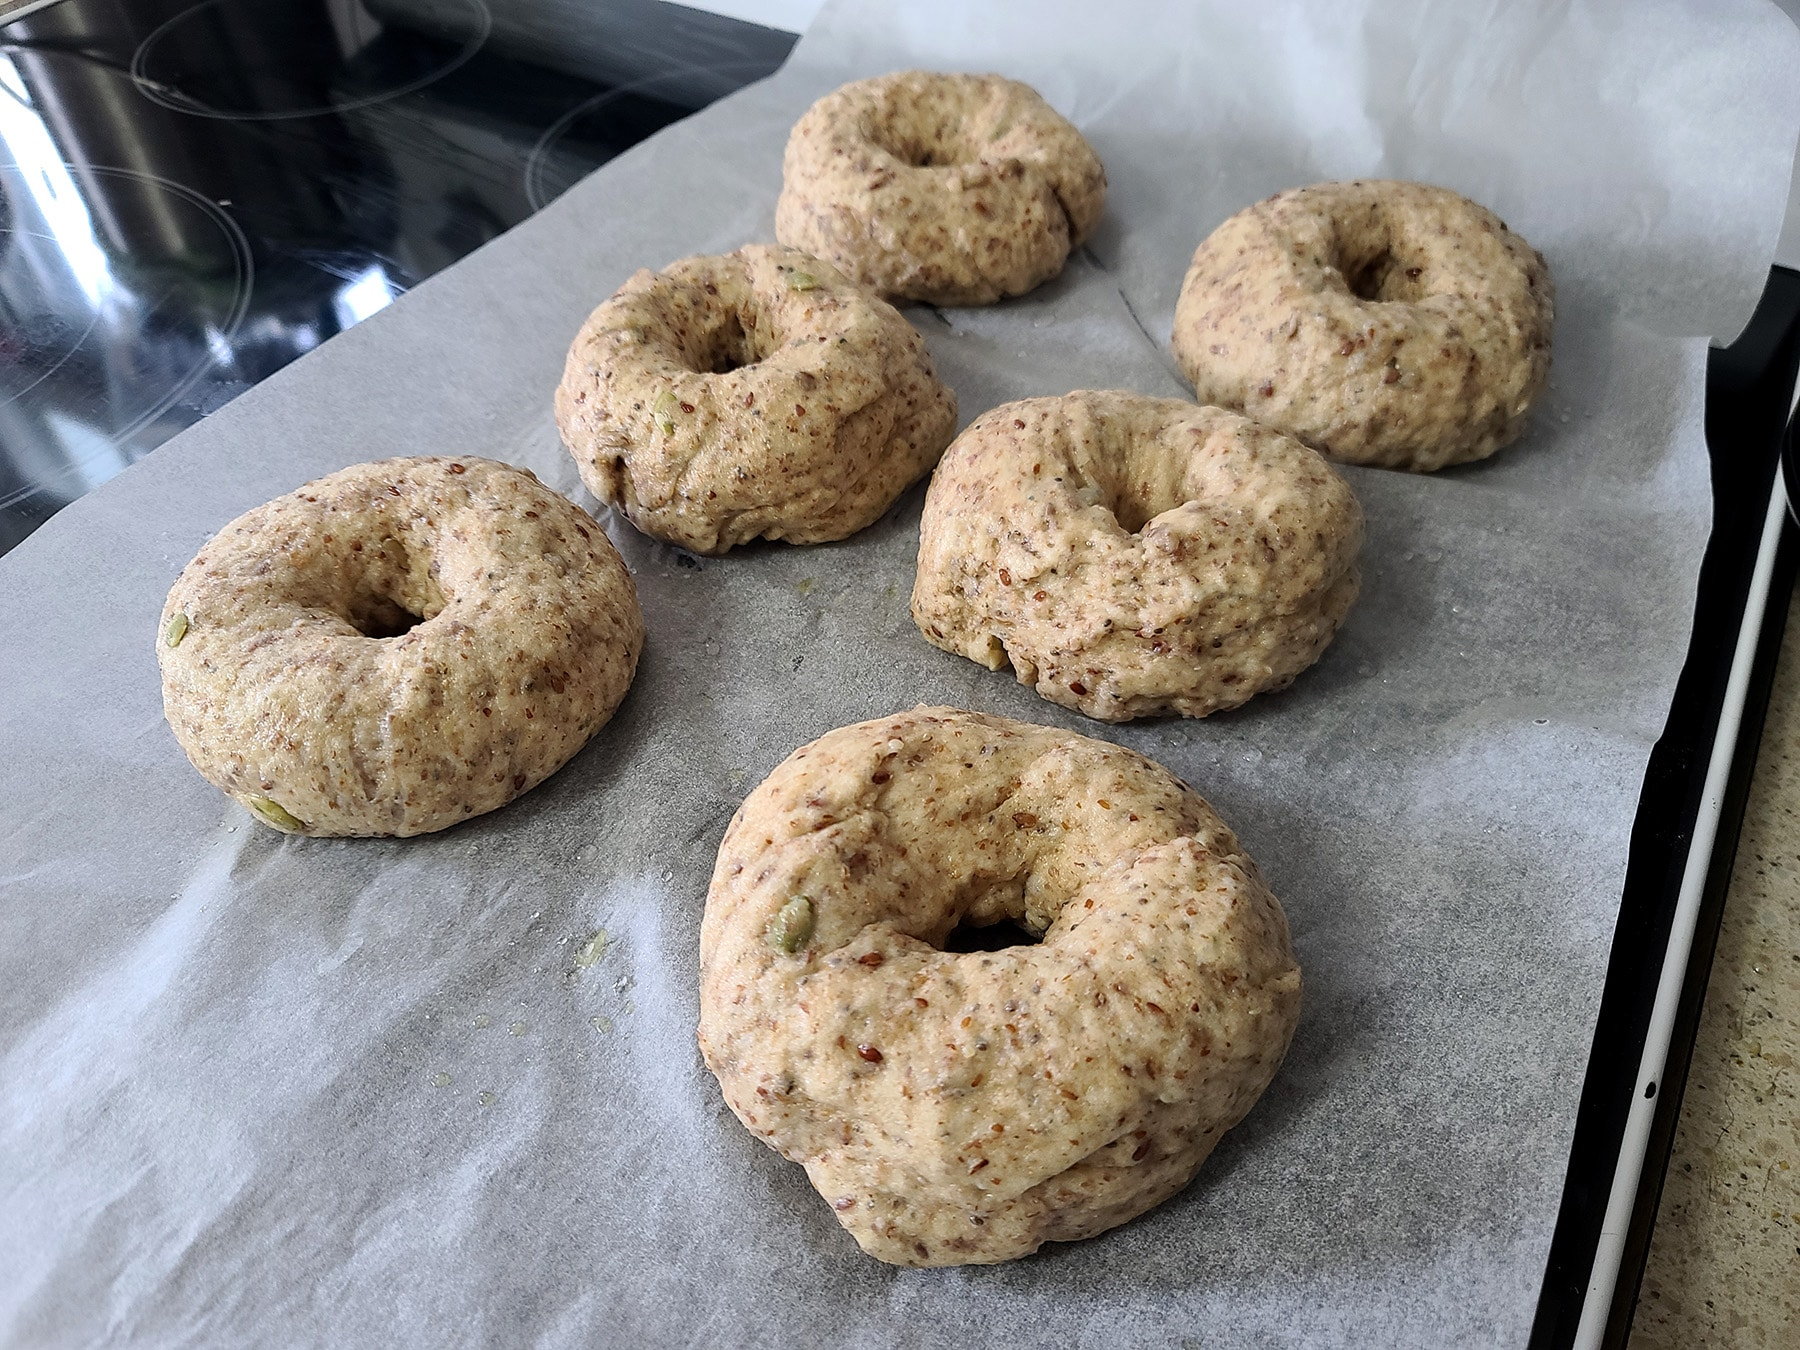 6 boiled seeded whole wheat flax bagels resting on a parchment lined baking sheet.